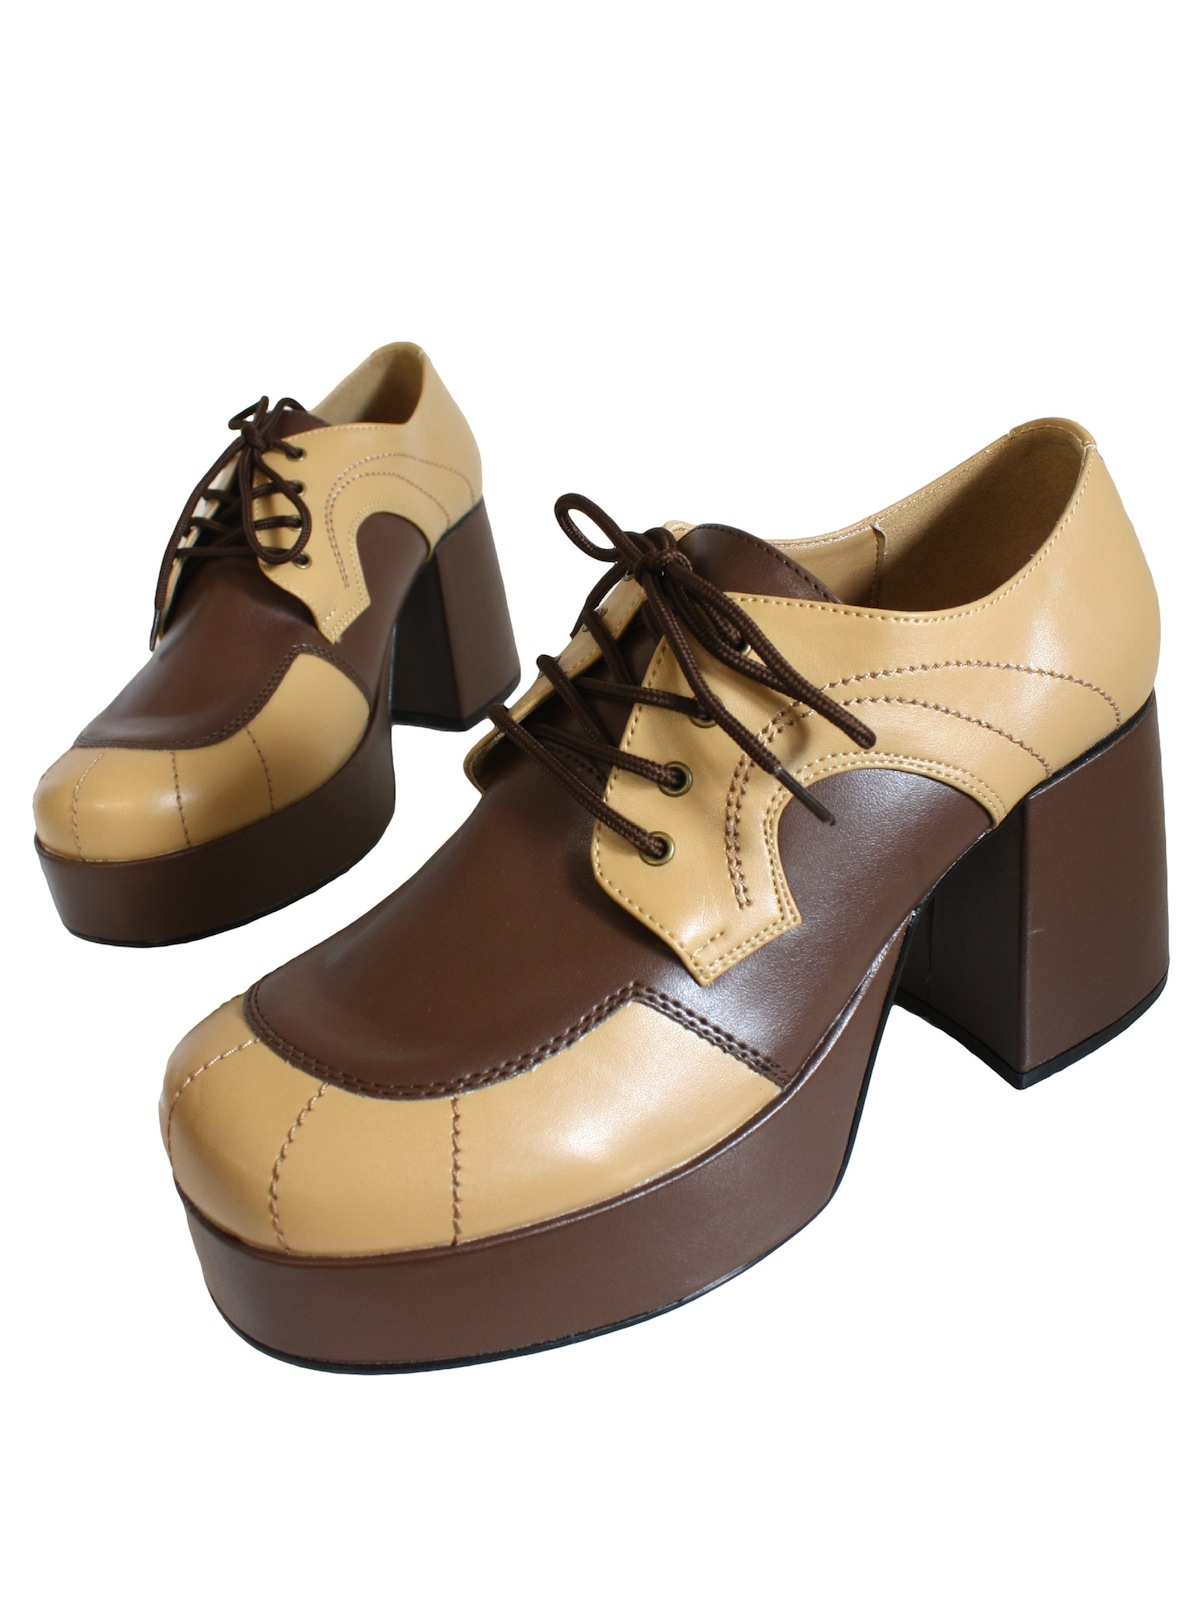 Vintage 70s Shoes 70s Reproduction Made Recently Two